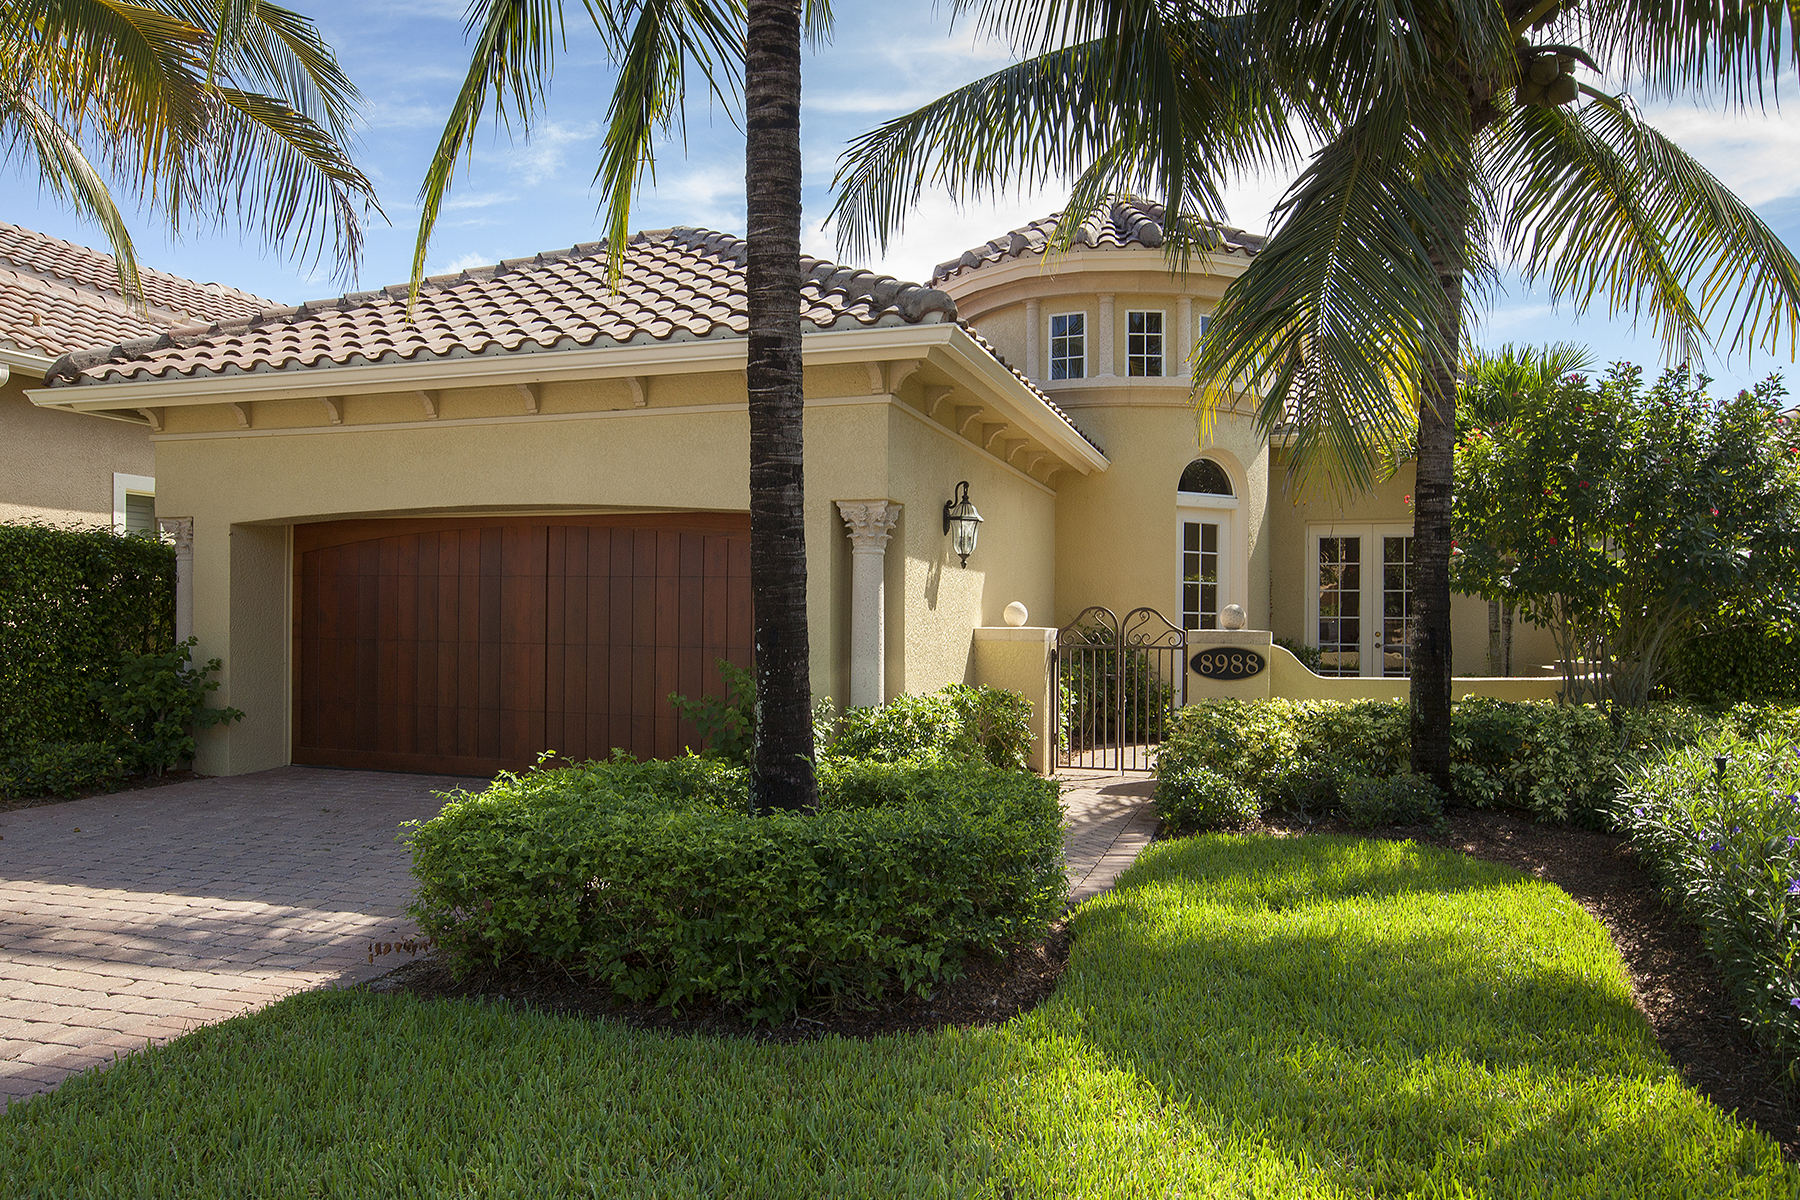 Casa Unifamiliar por un Venta en CRANBERRY CROSSING 8988 Cherry Oaks Trl Naples, Florida, 34114 Estados Unidos